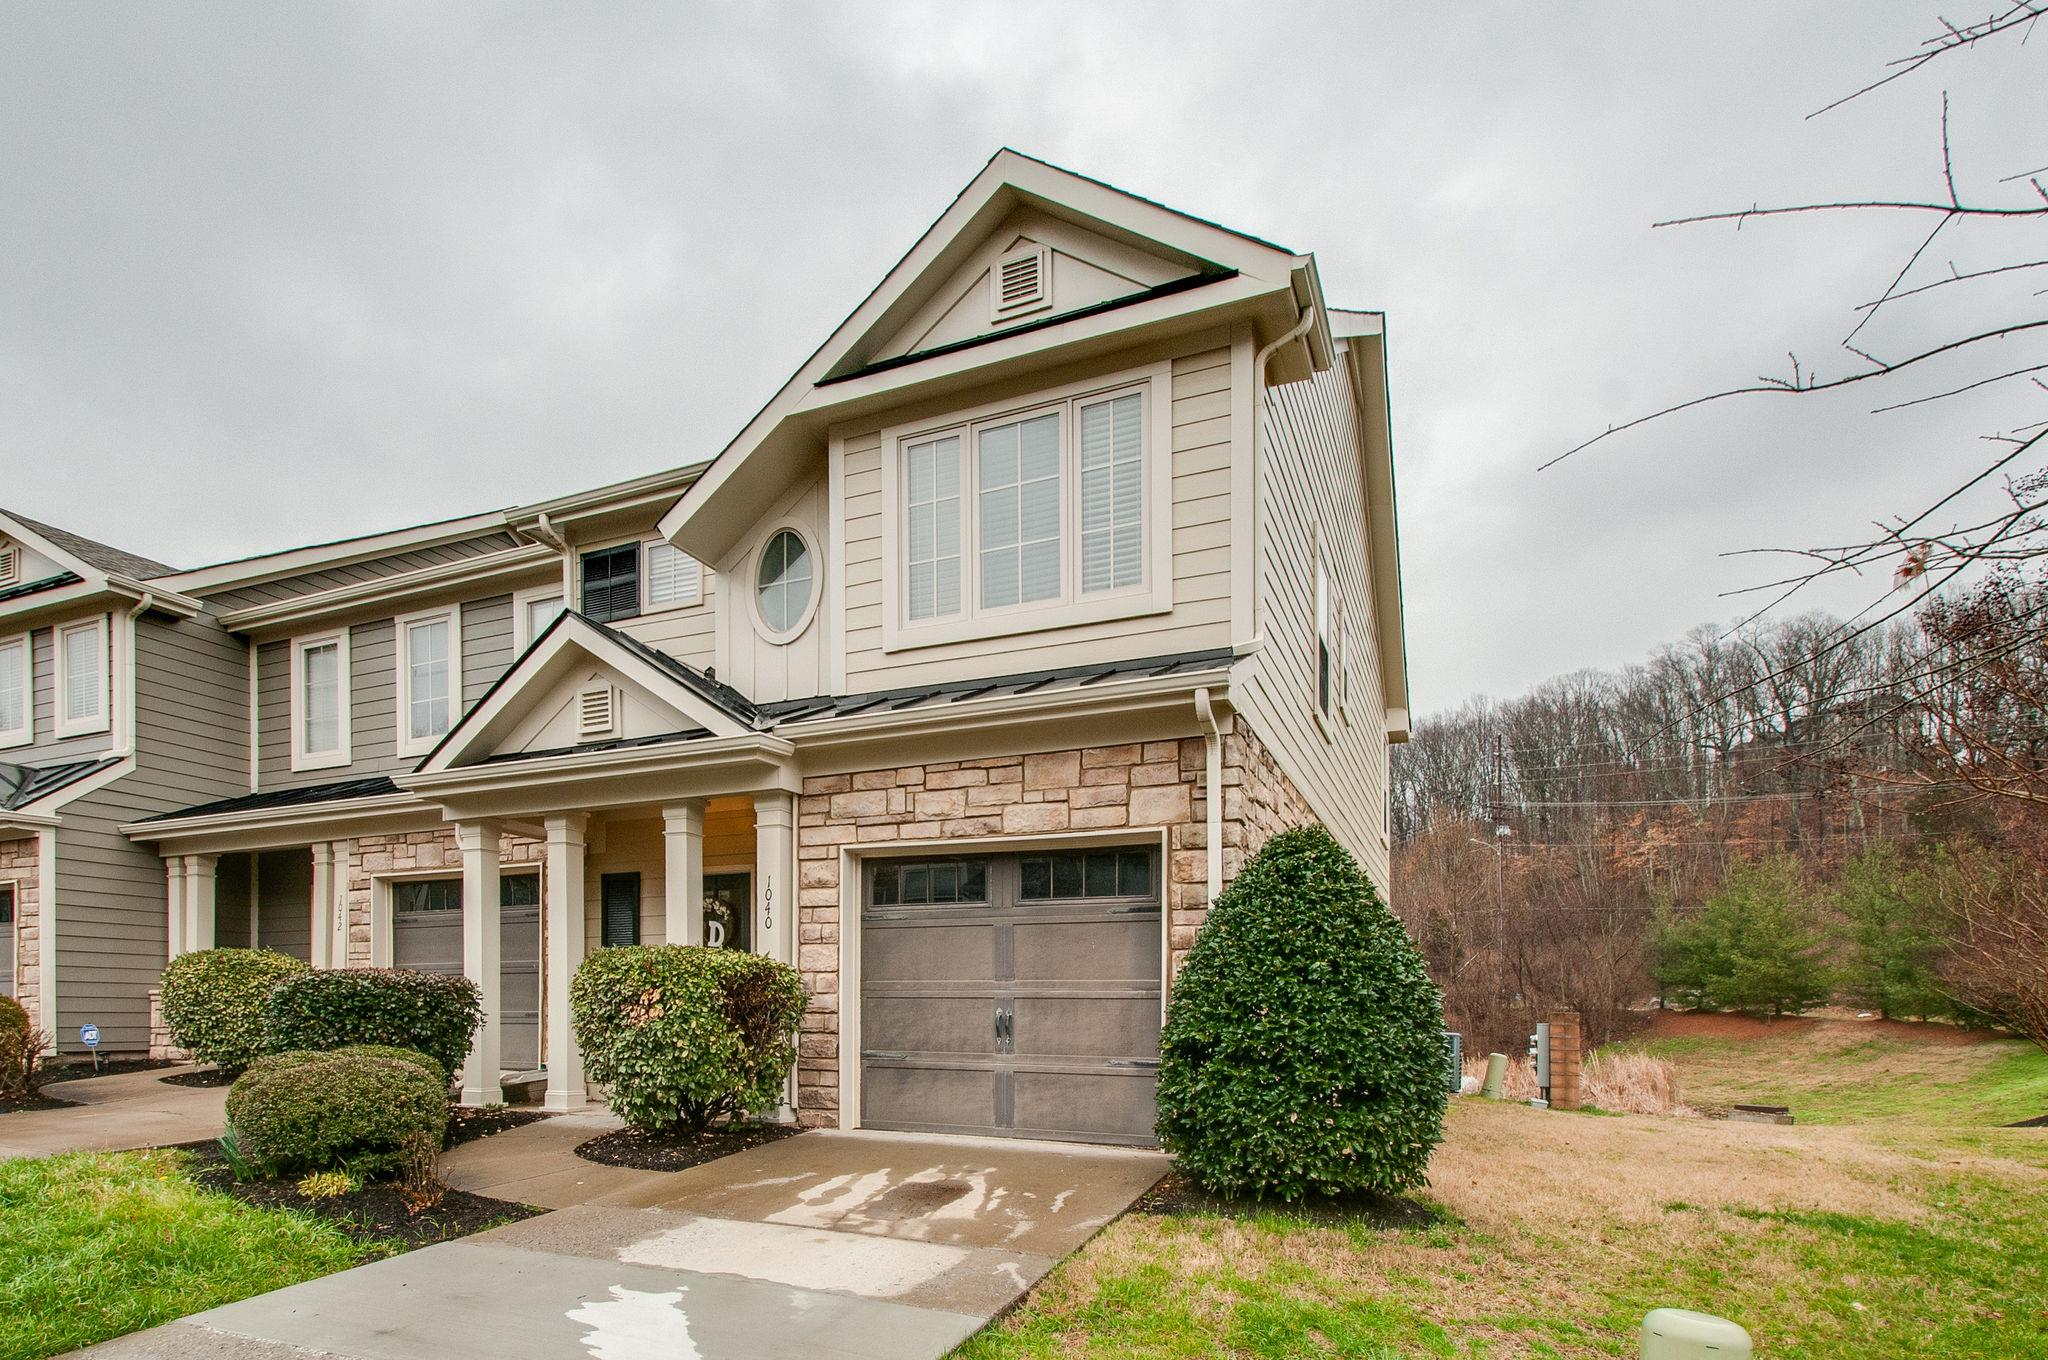 1040 Woodbury Falls Dr, Bellevue in Davidson County County, TN 37221 Home for Sale